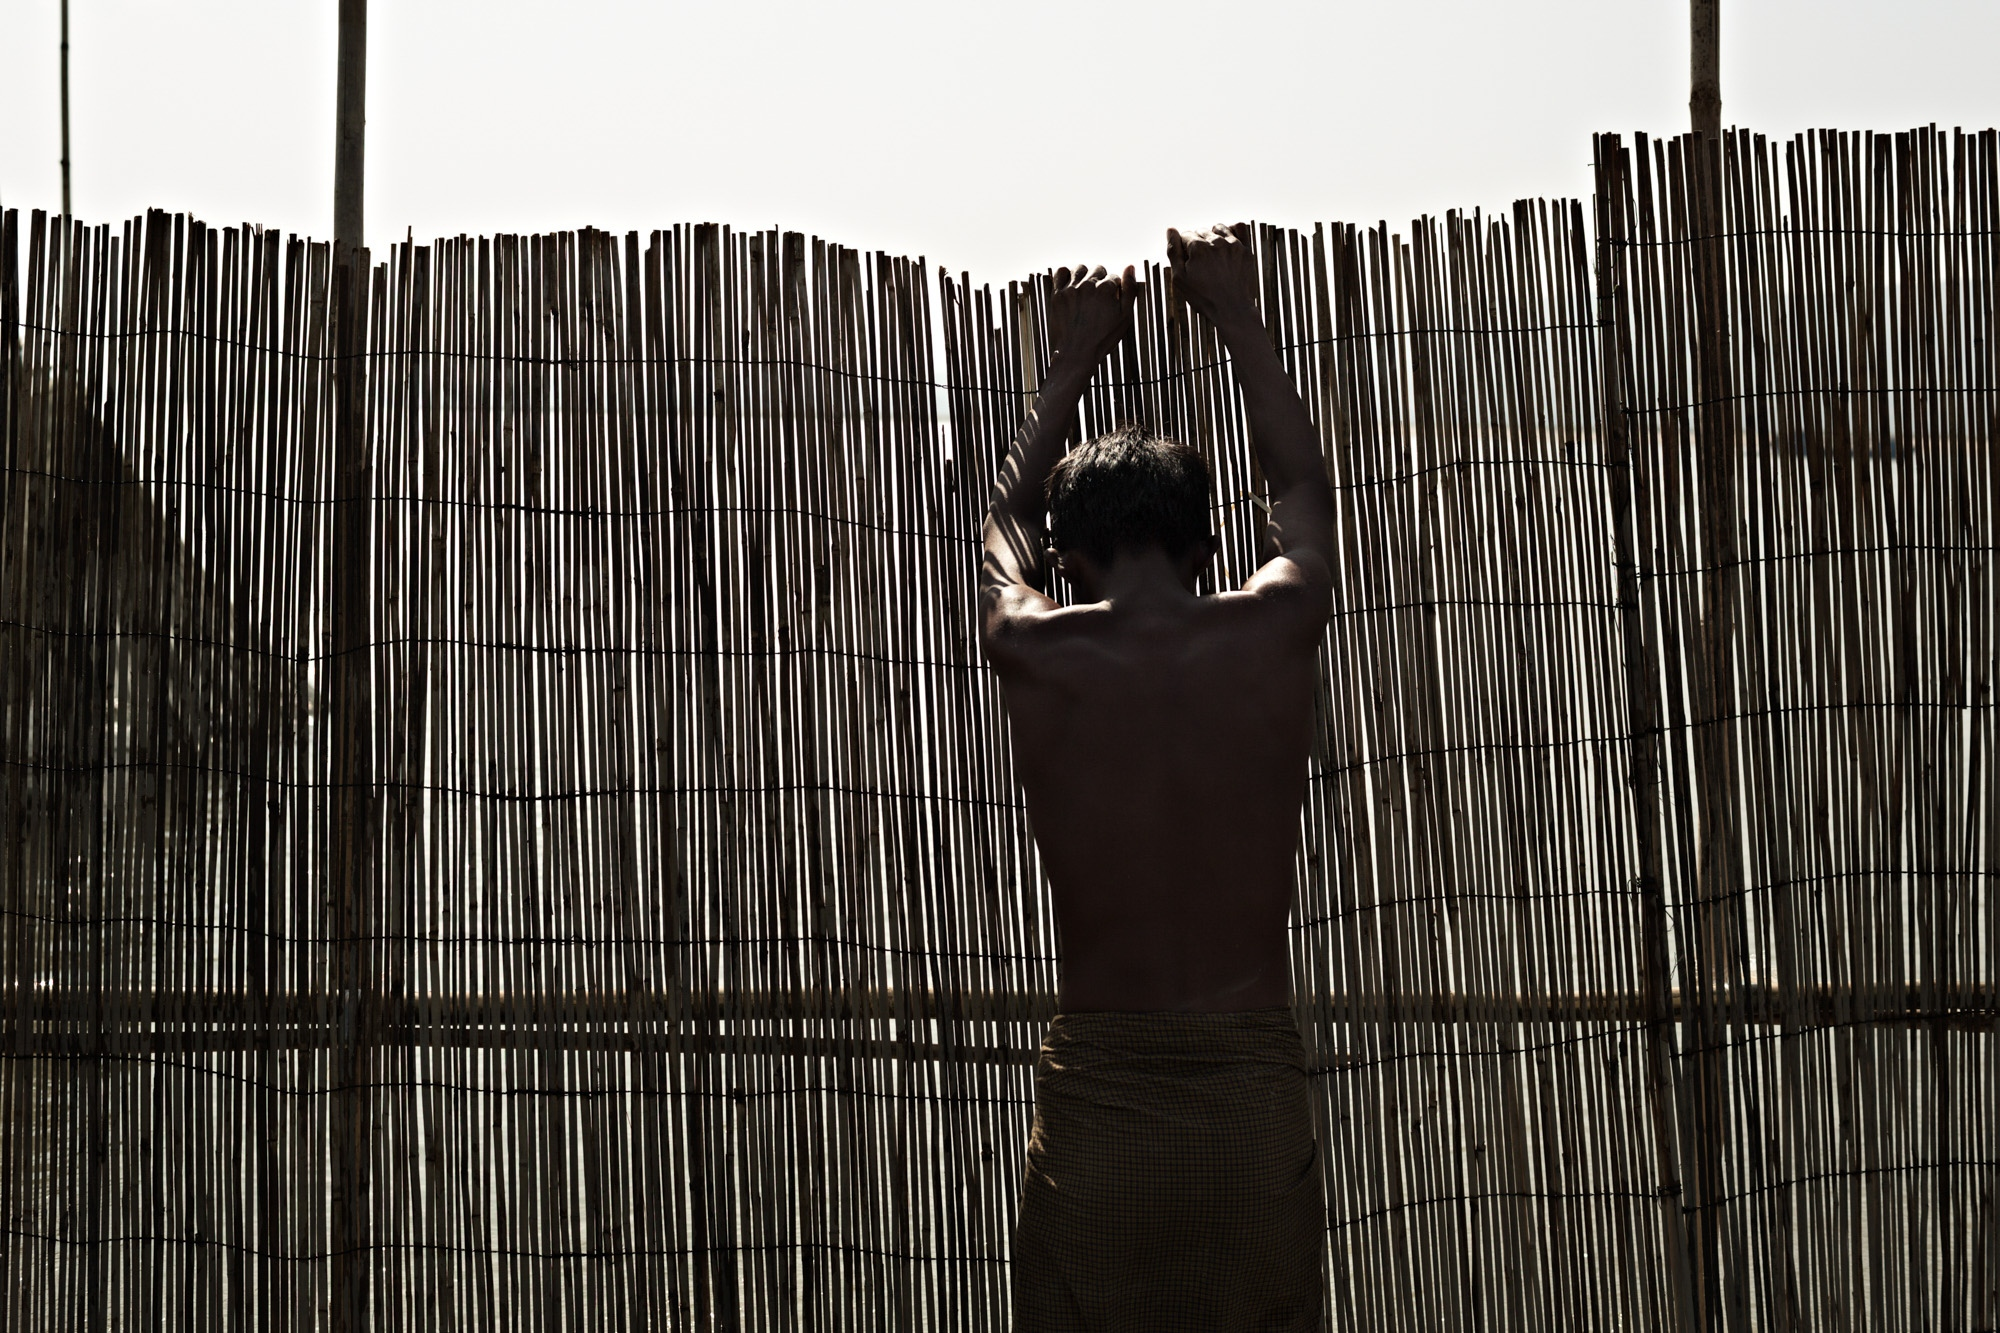 A fisherman puts up a bamboo fence on the Irrawaddy River that will funnel fish into waiting net.